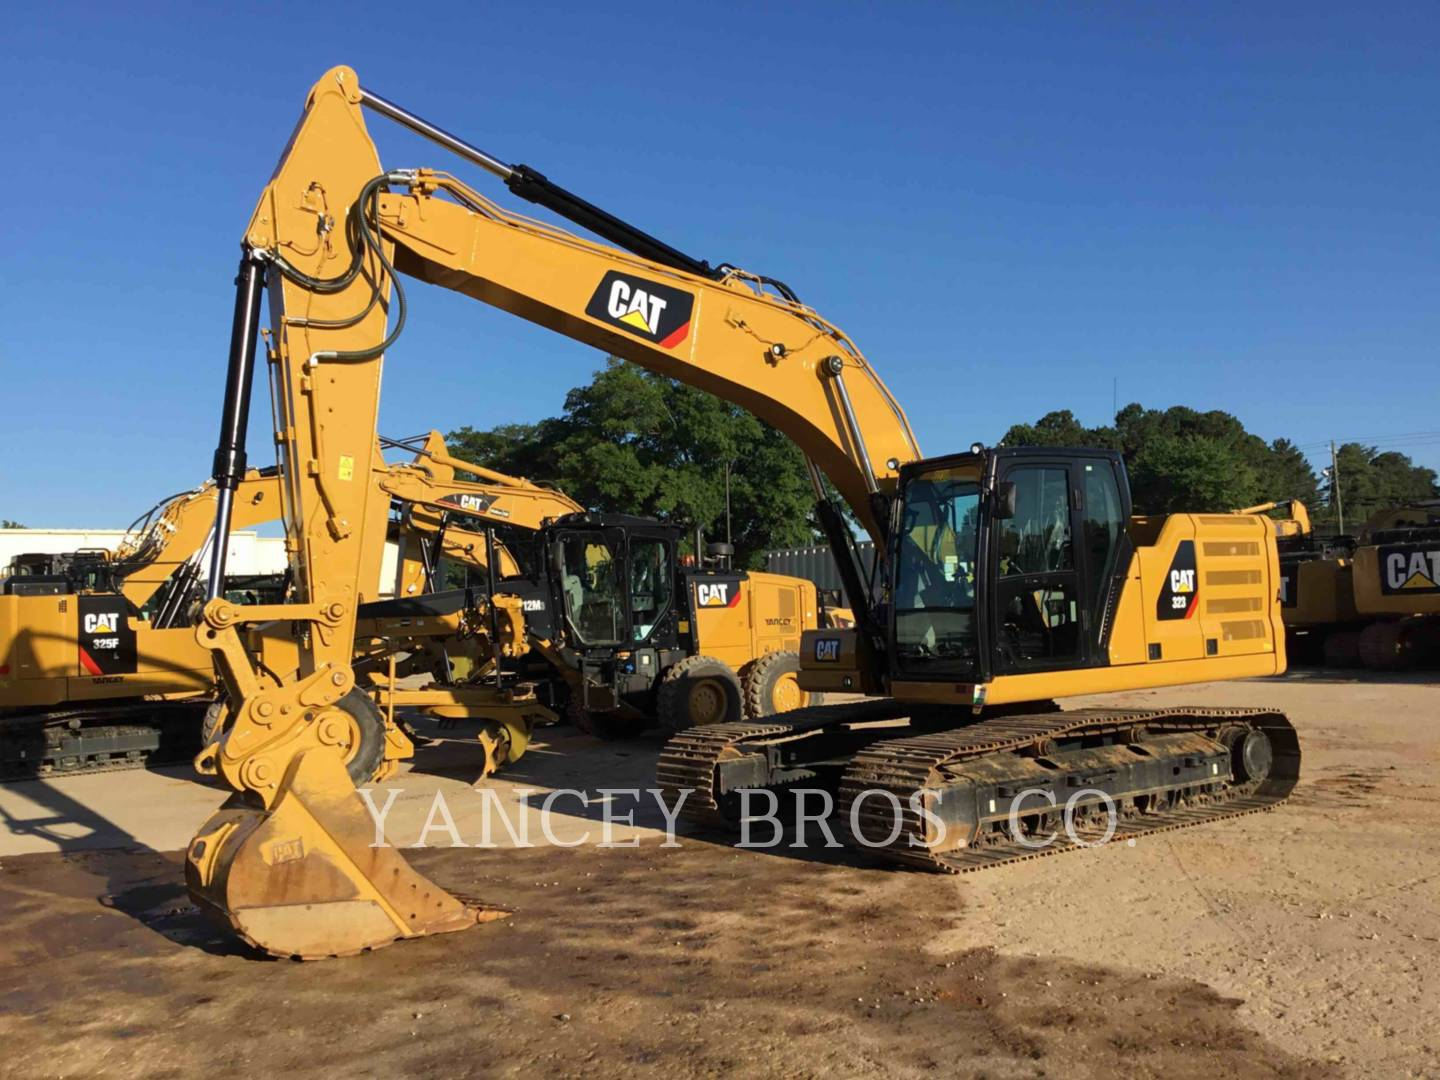 2018 - CATERPILLAR - 323 TC